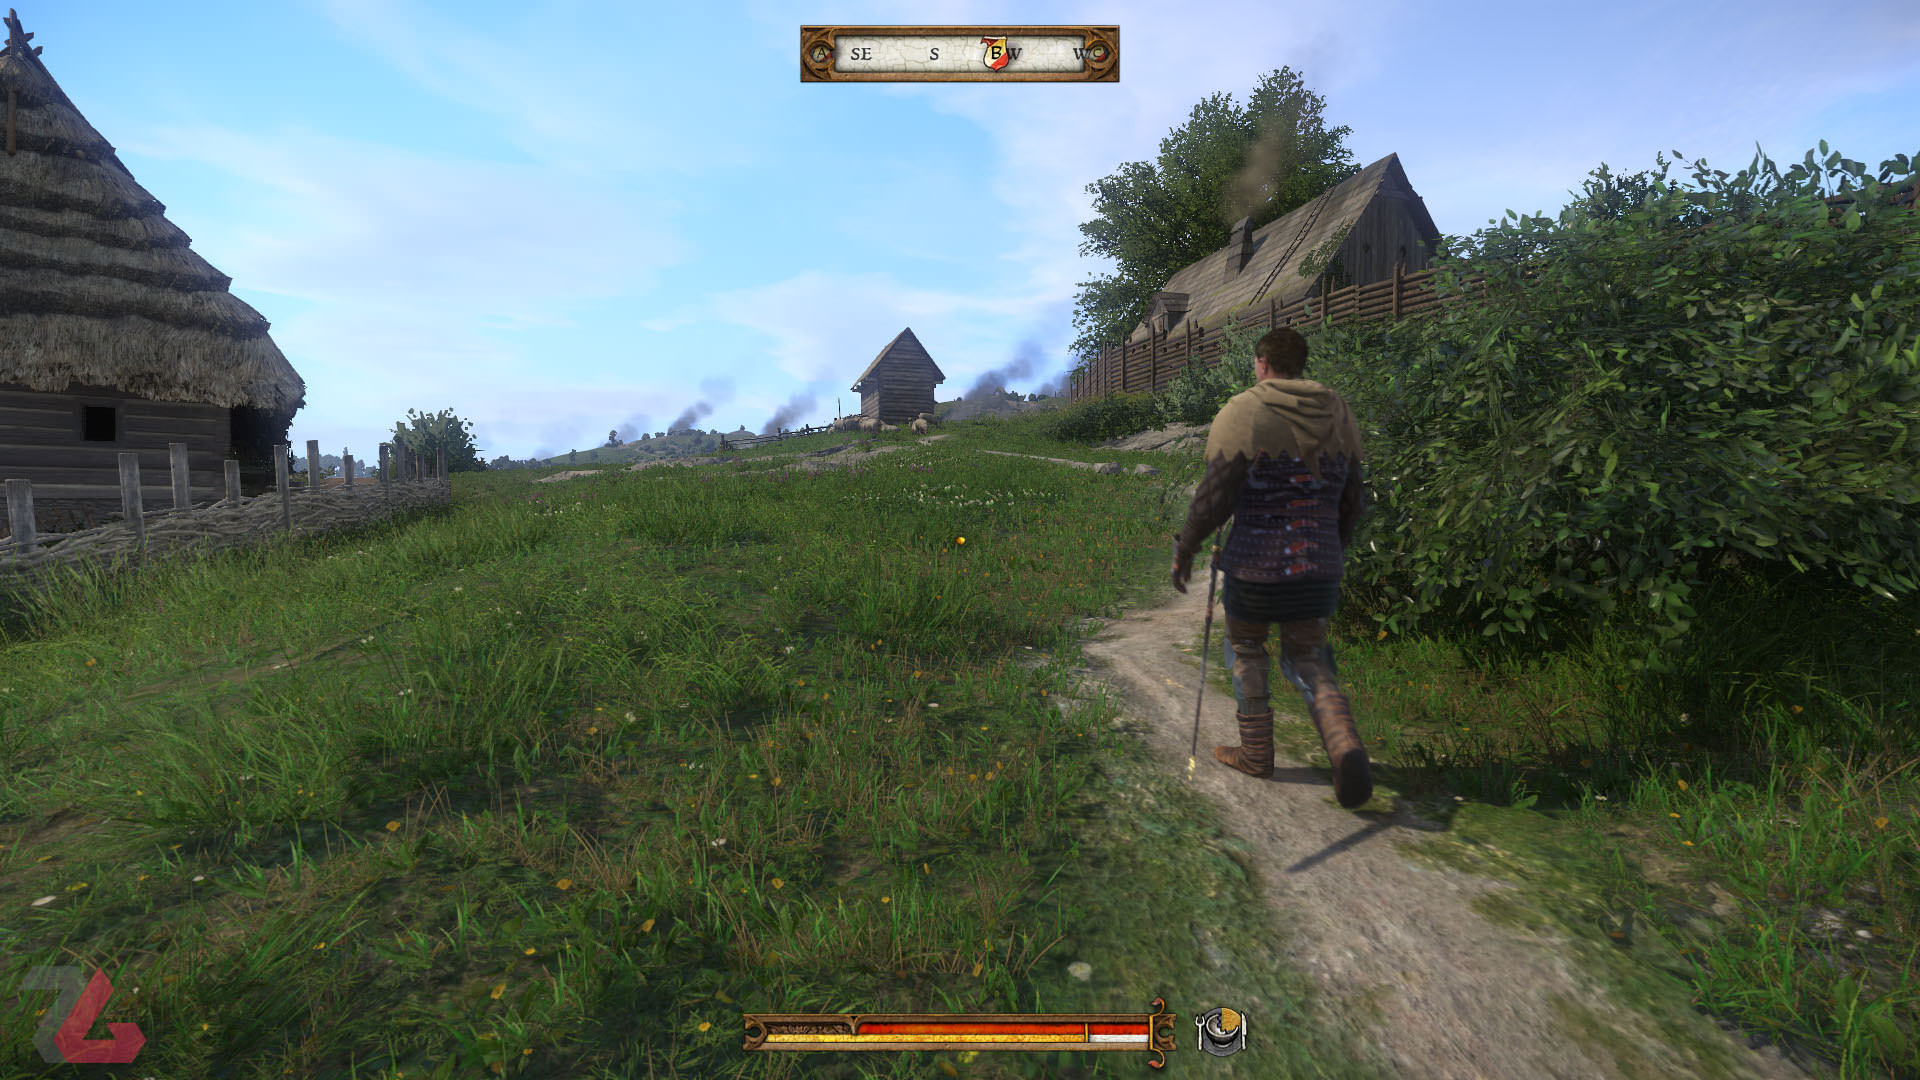 بررسی بازی Kingdom Come Deliverance